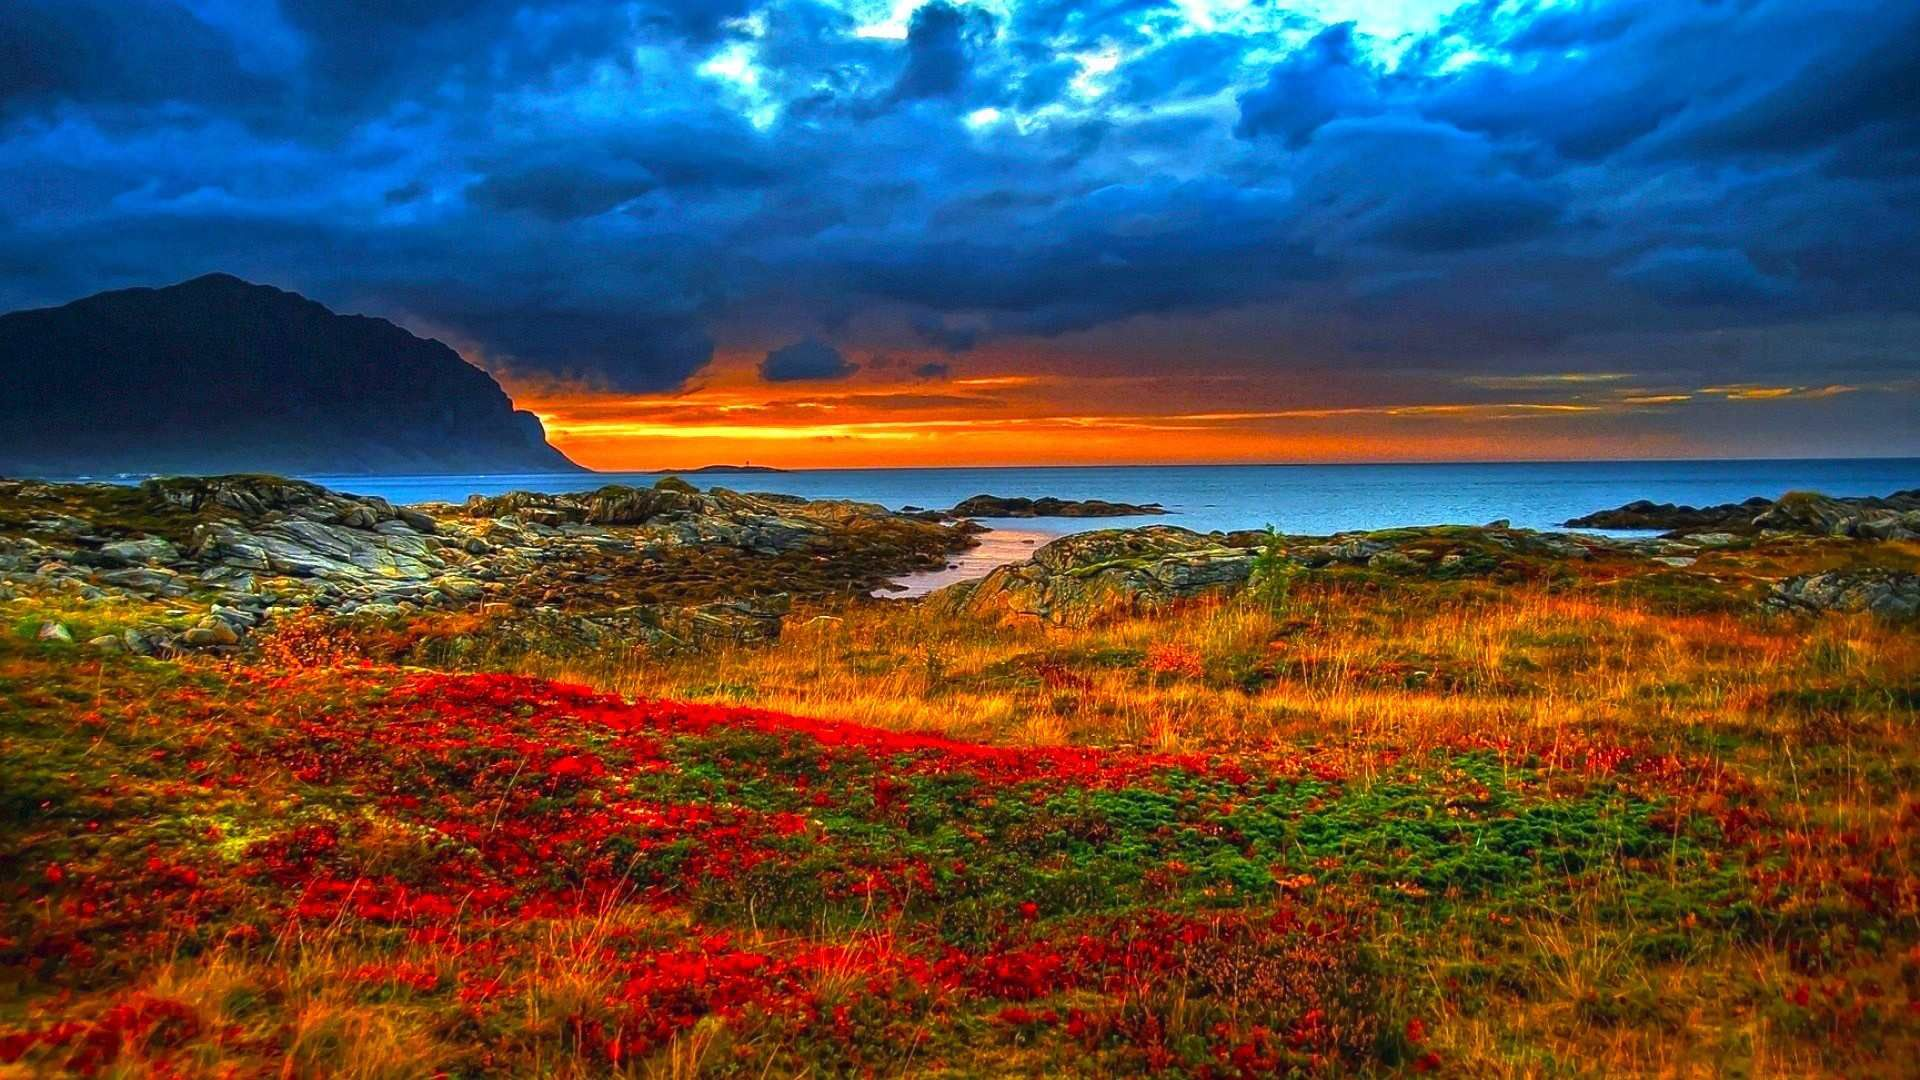 Beautiful Nature Wallpapers Wallpaper Cave Landscape Photos Beautiful Nature Wallpaper Landscape Pictures